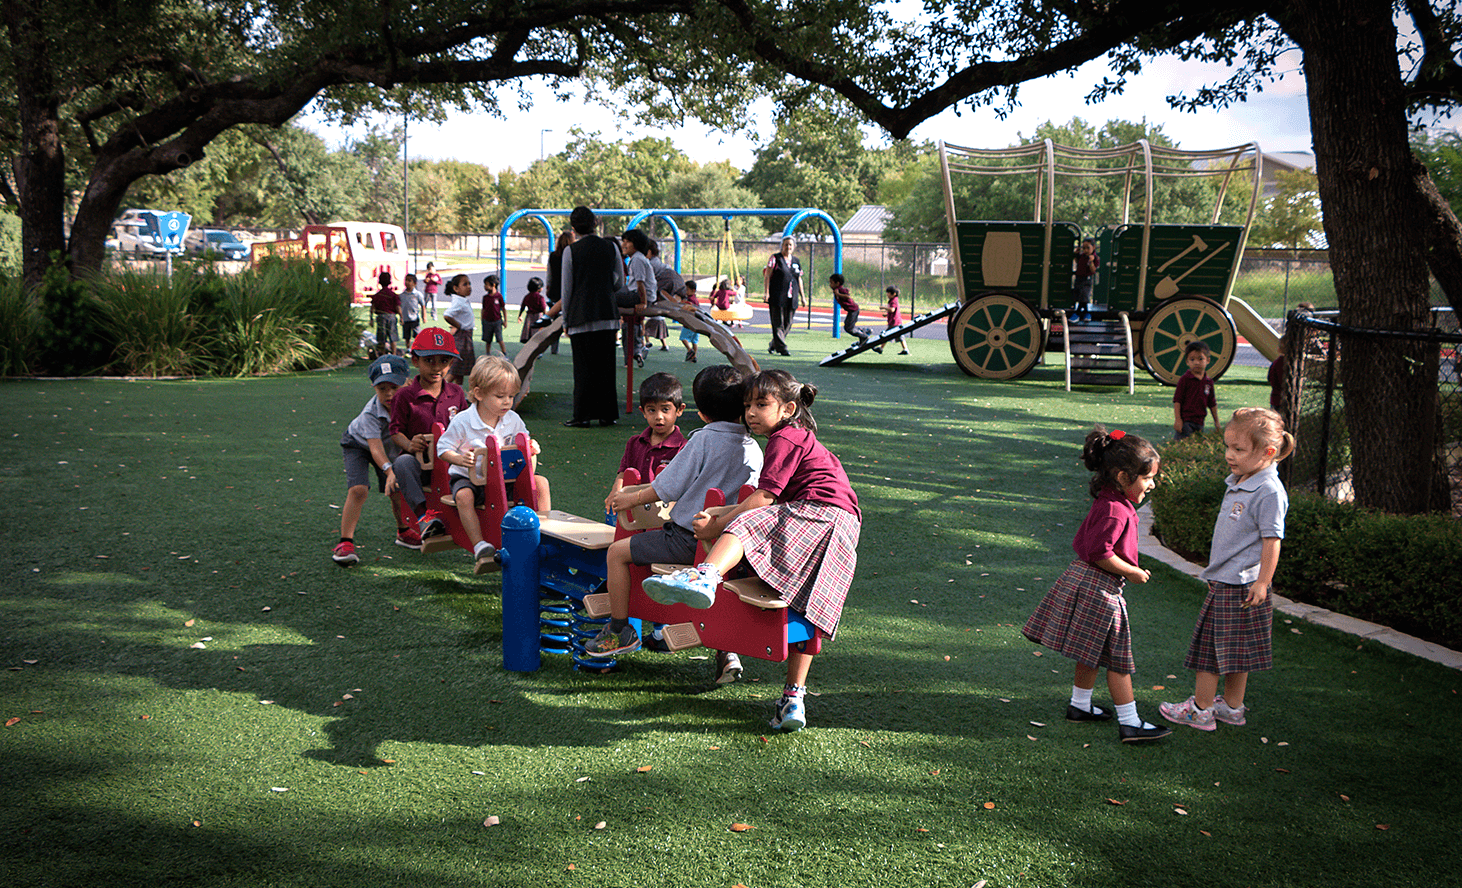 Playground Seesaw | Challenger School - Avery Ranch | Private School In Austin, Texas